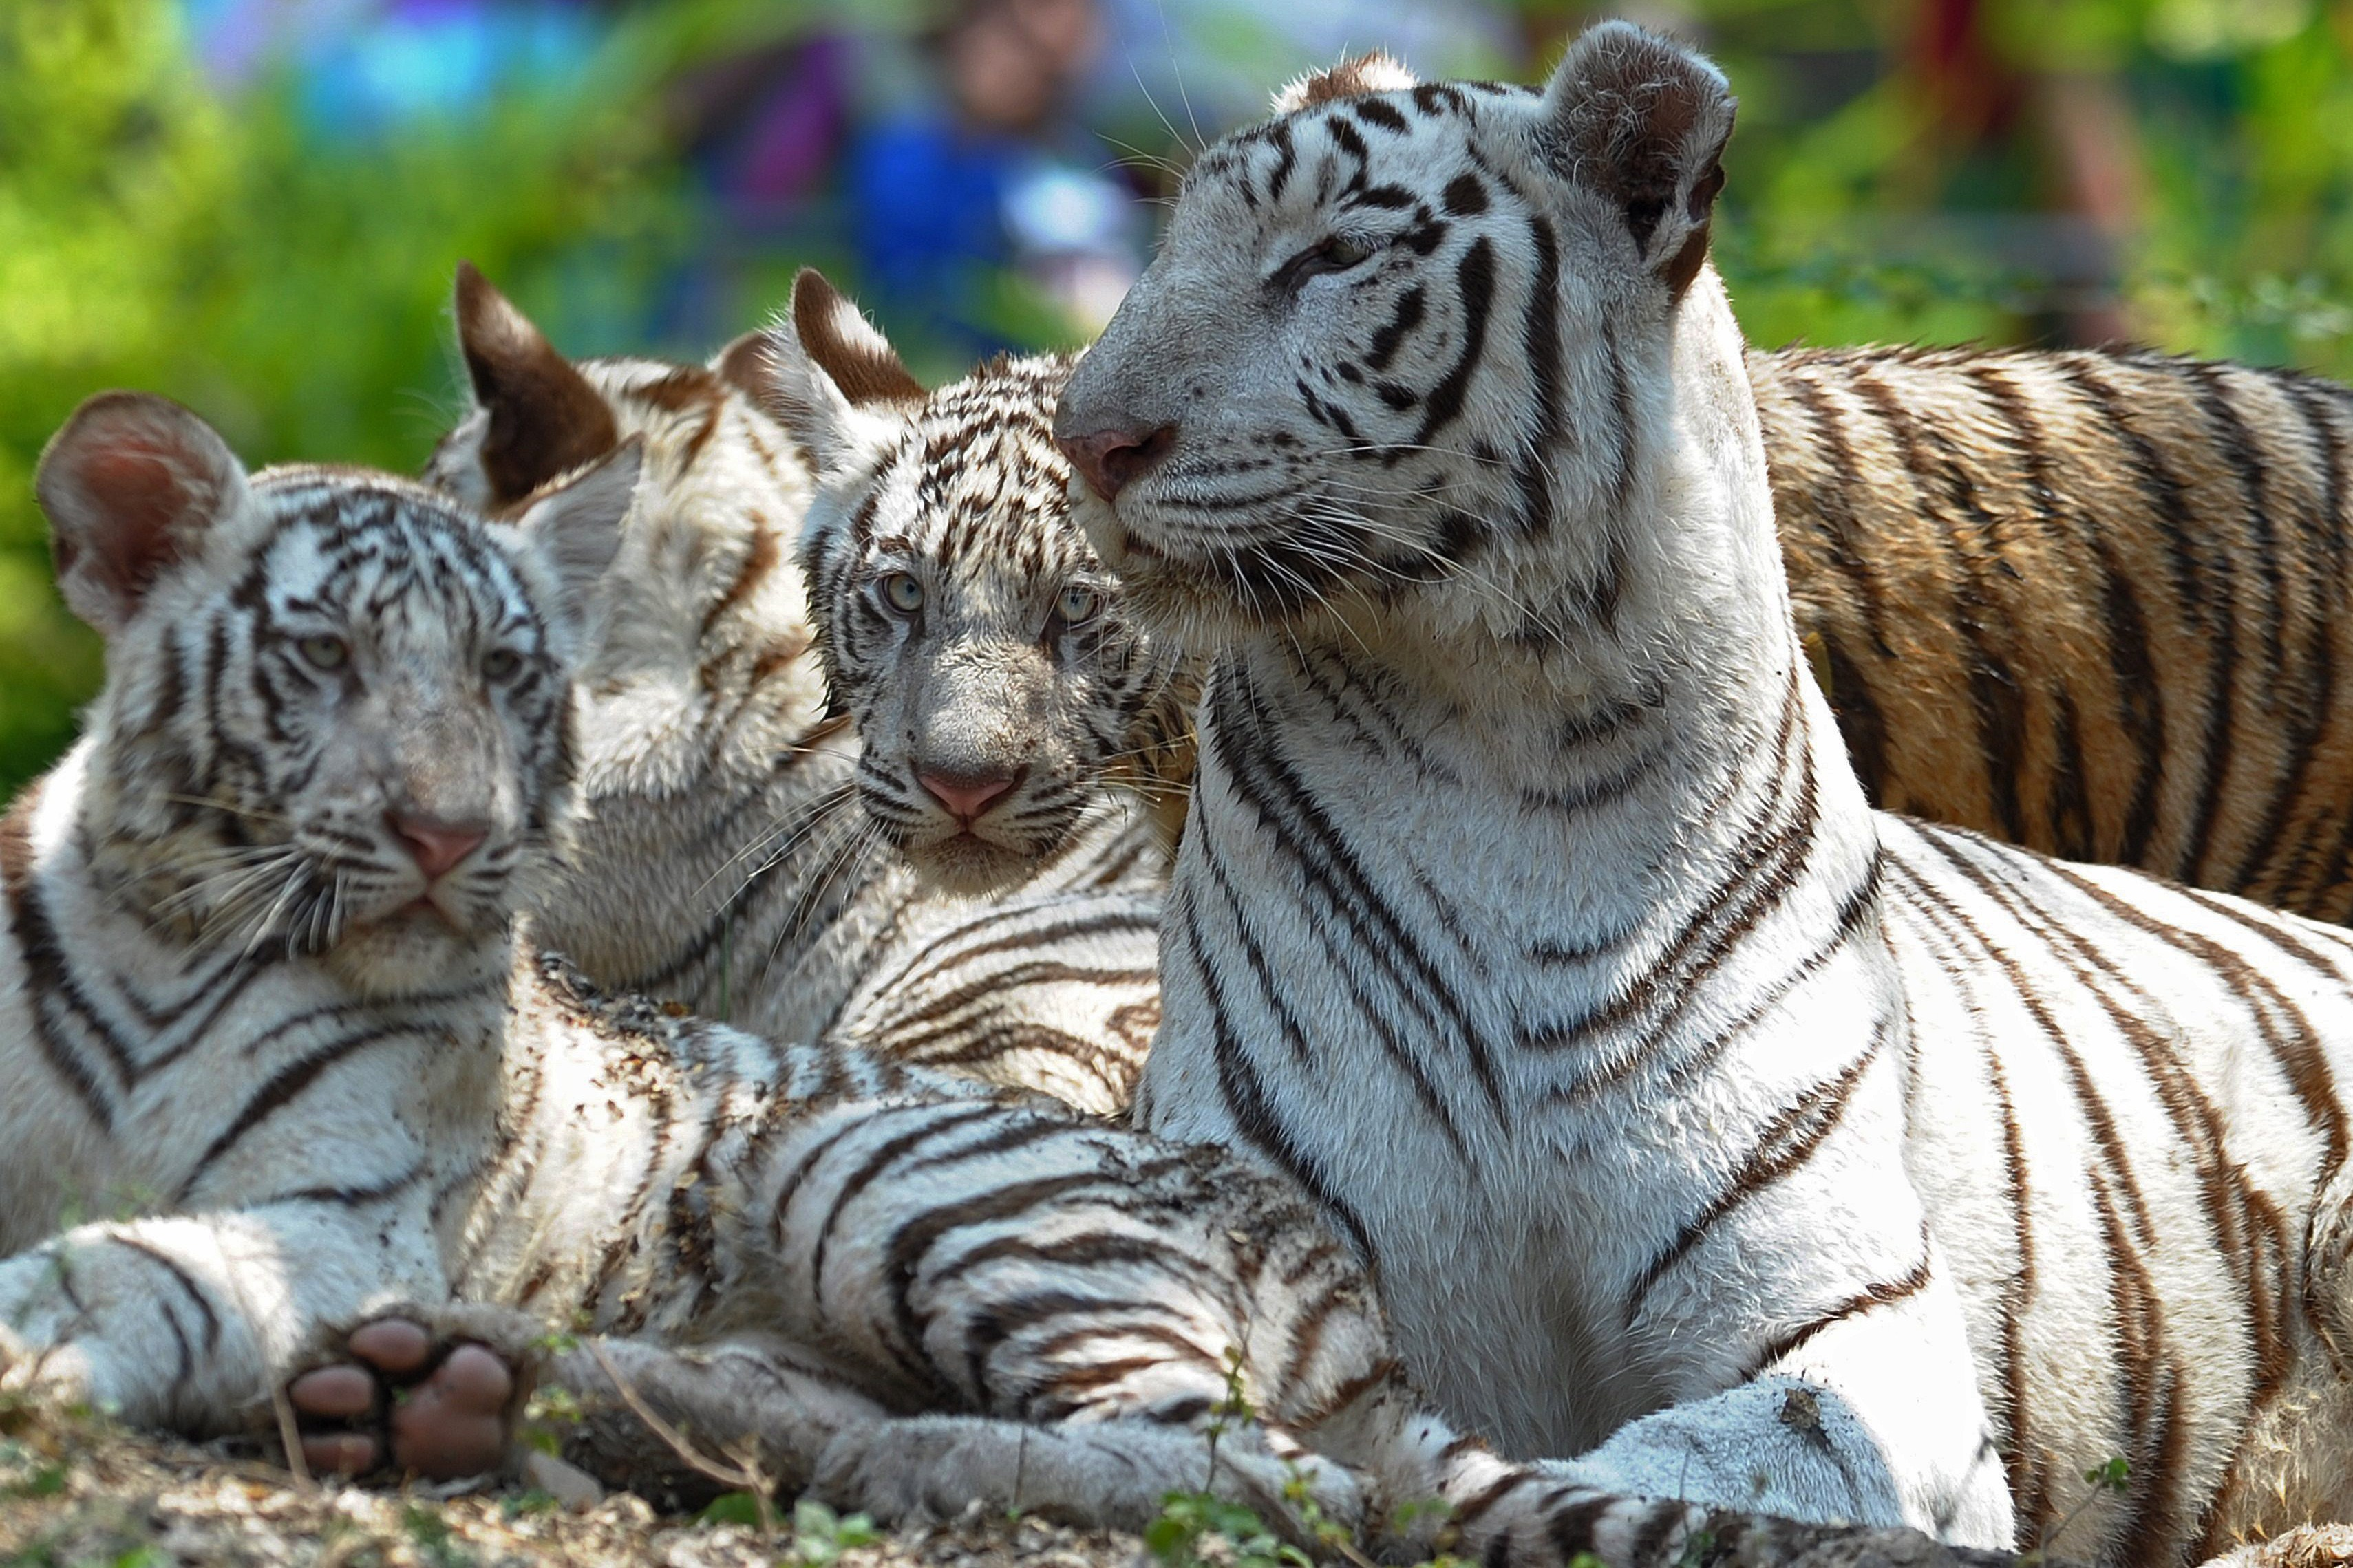 Three six-month old Indian white tiger cubs are pictured with their mother Sameera, right, at their enclosure at the Nehru Zoological Park in Hyderabad, India on March 29, 2014.